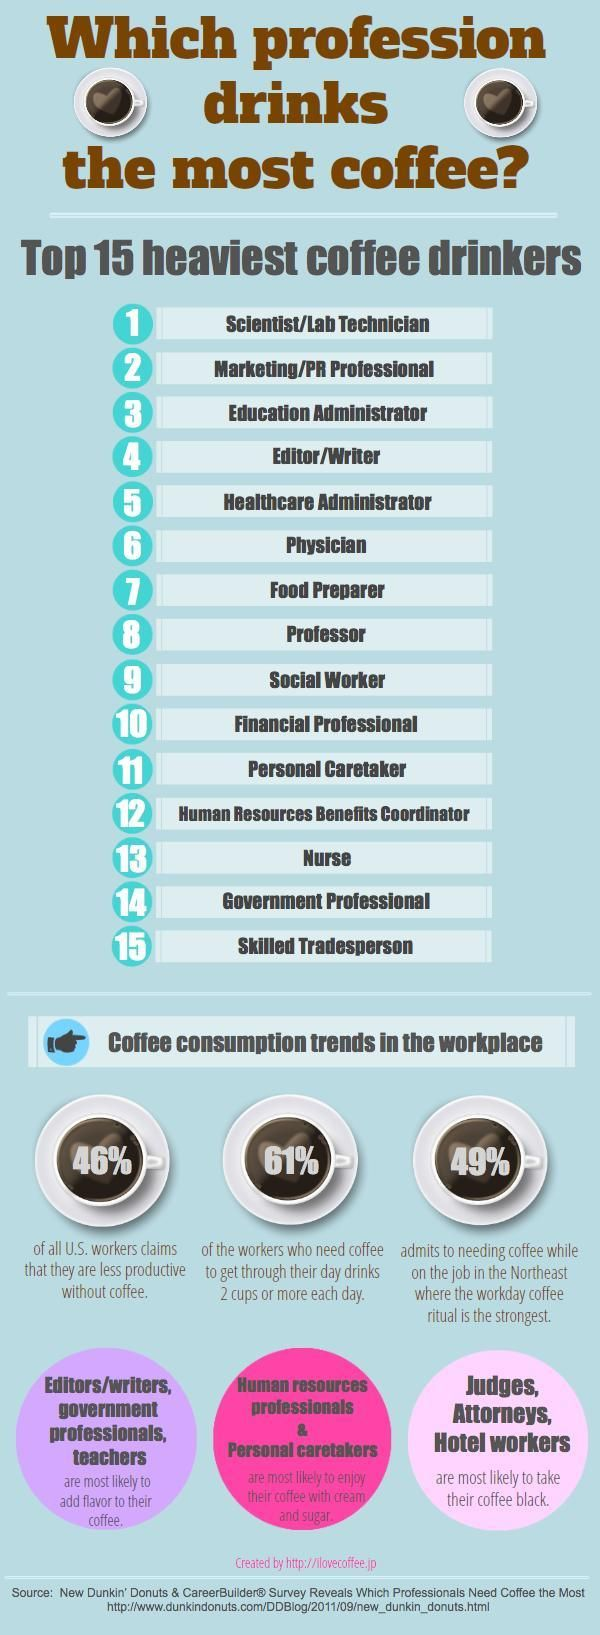 who drinks the most coffee